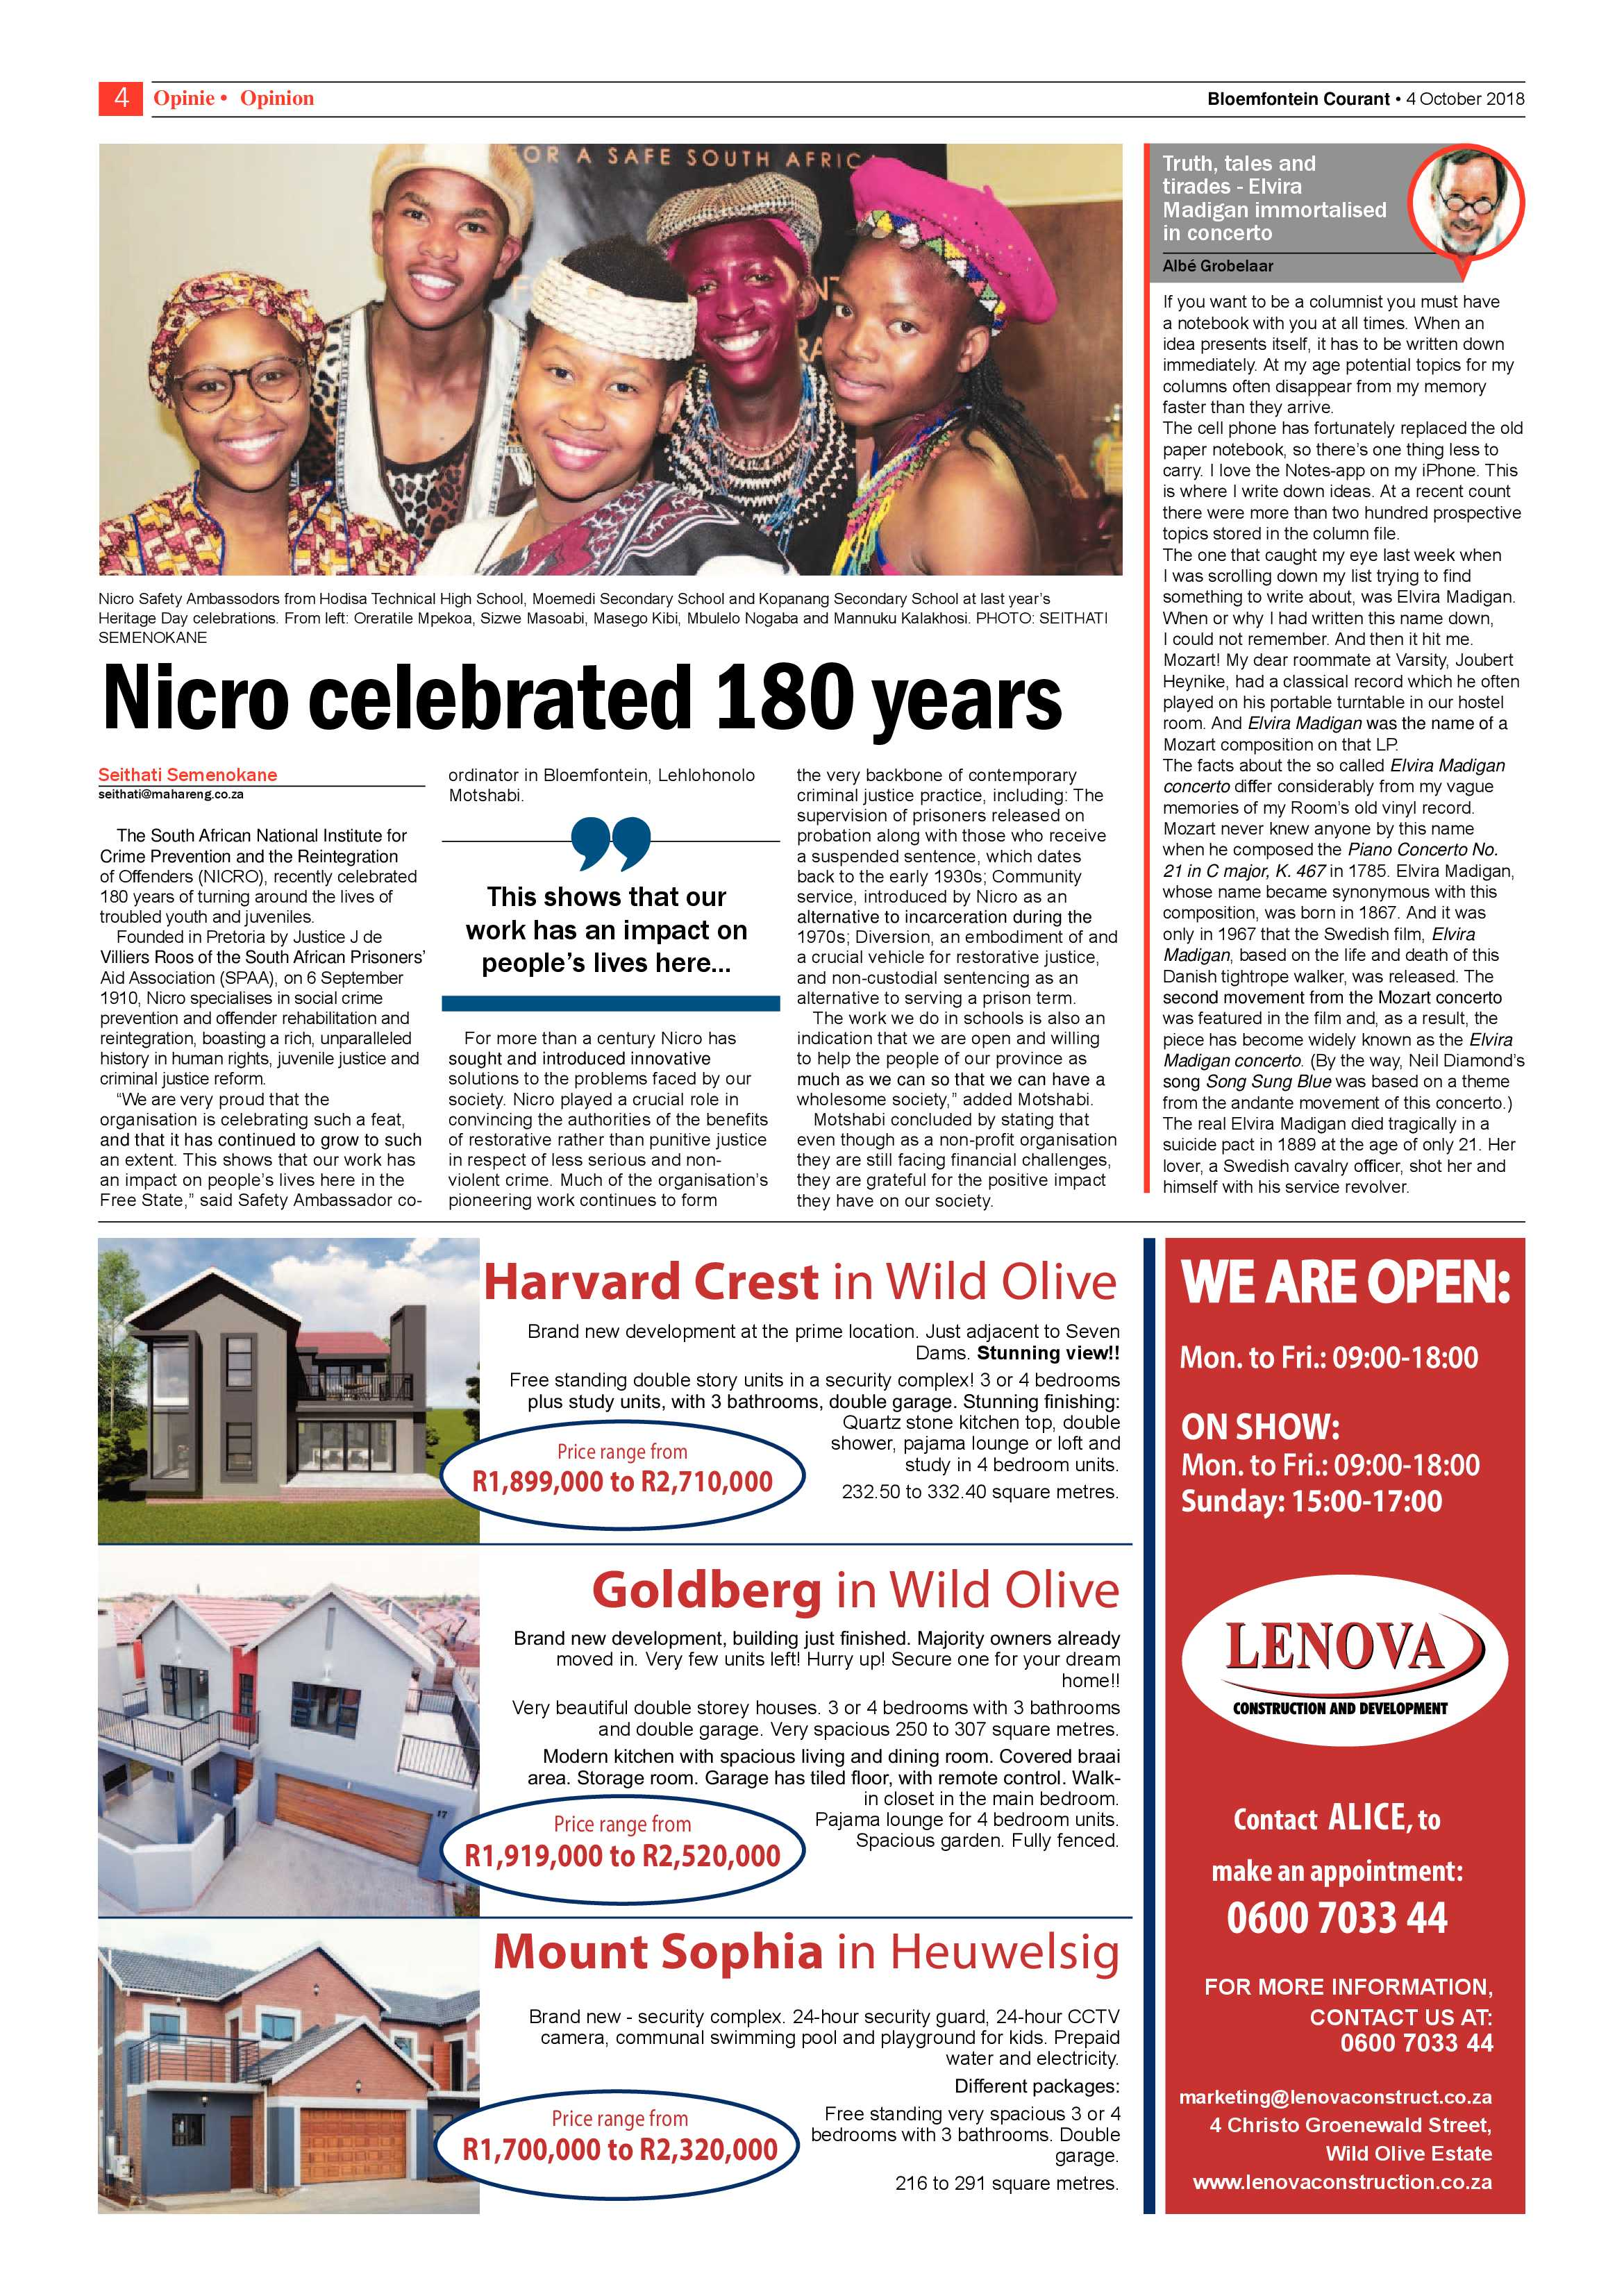 courant-04-october-2018-epapers-page-4